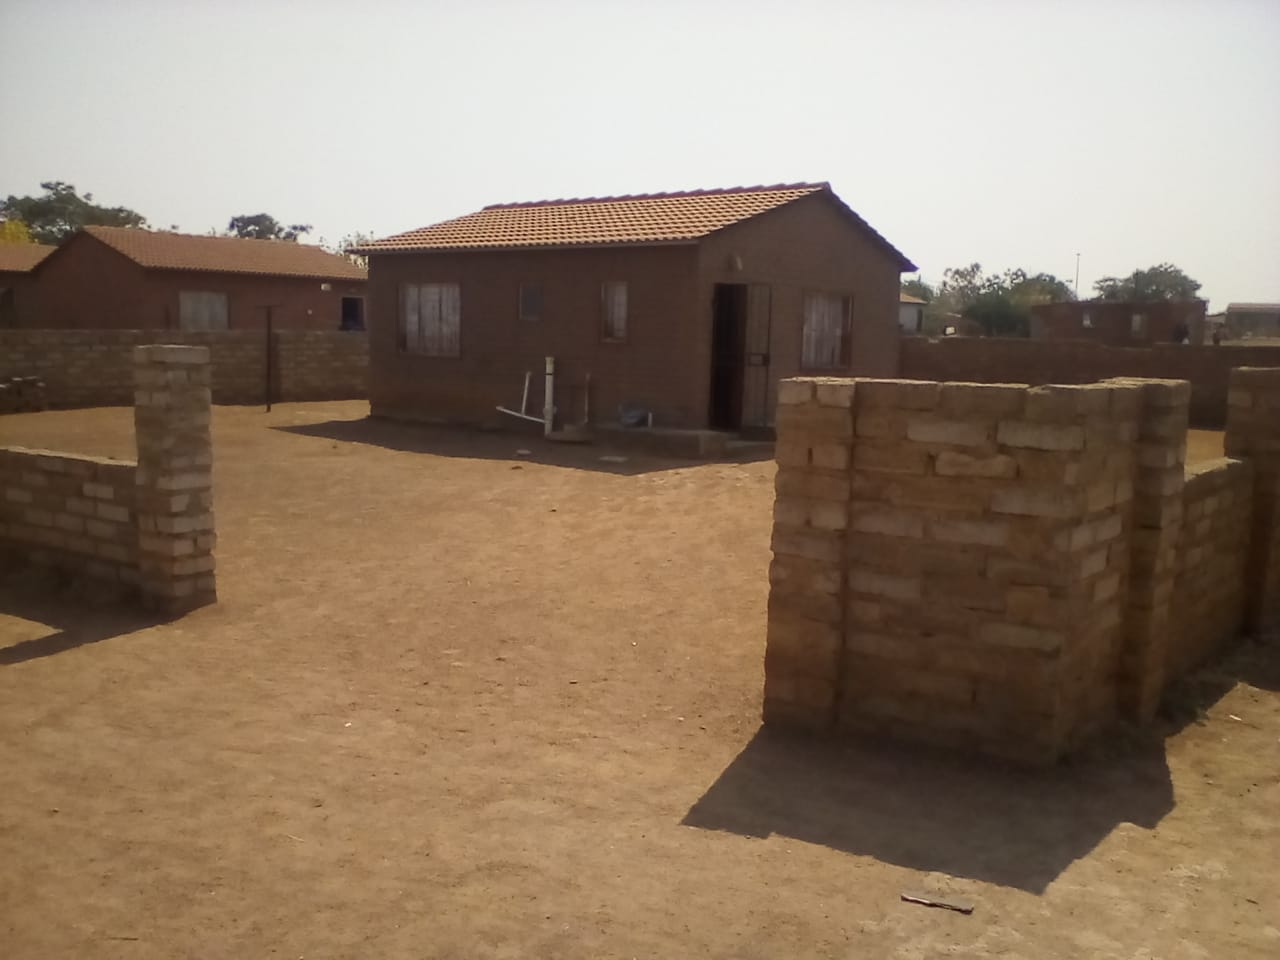 SPACIOUS STAND 2BEDROOMS AT MABOPANE, WINTERVELDT